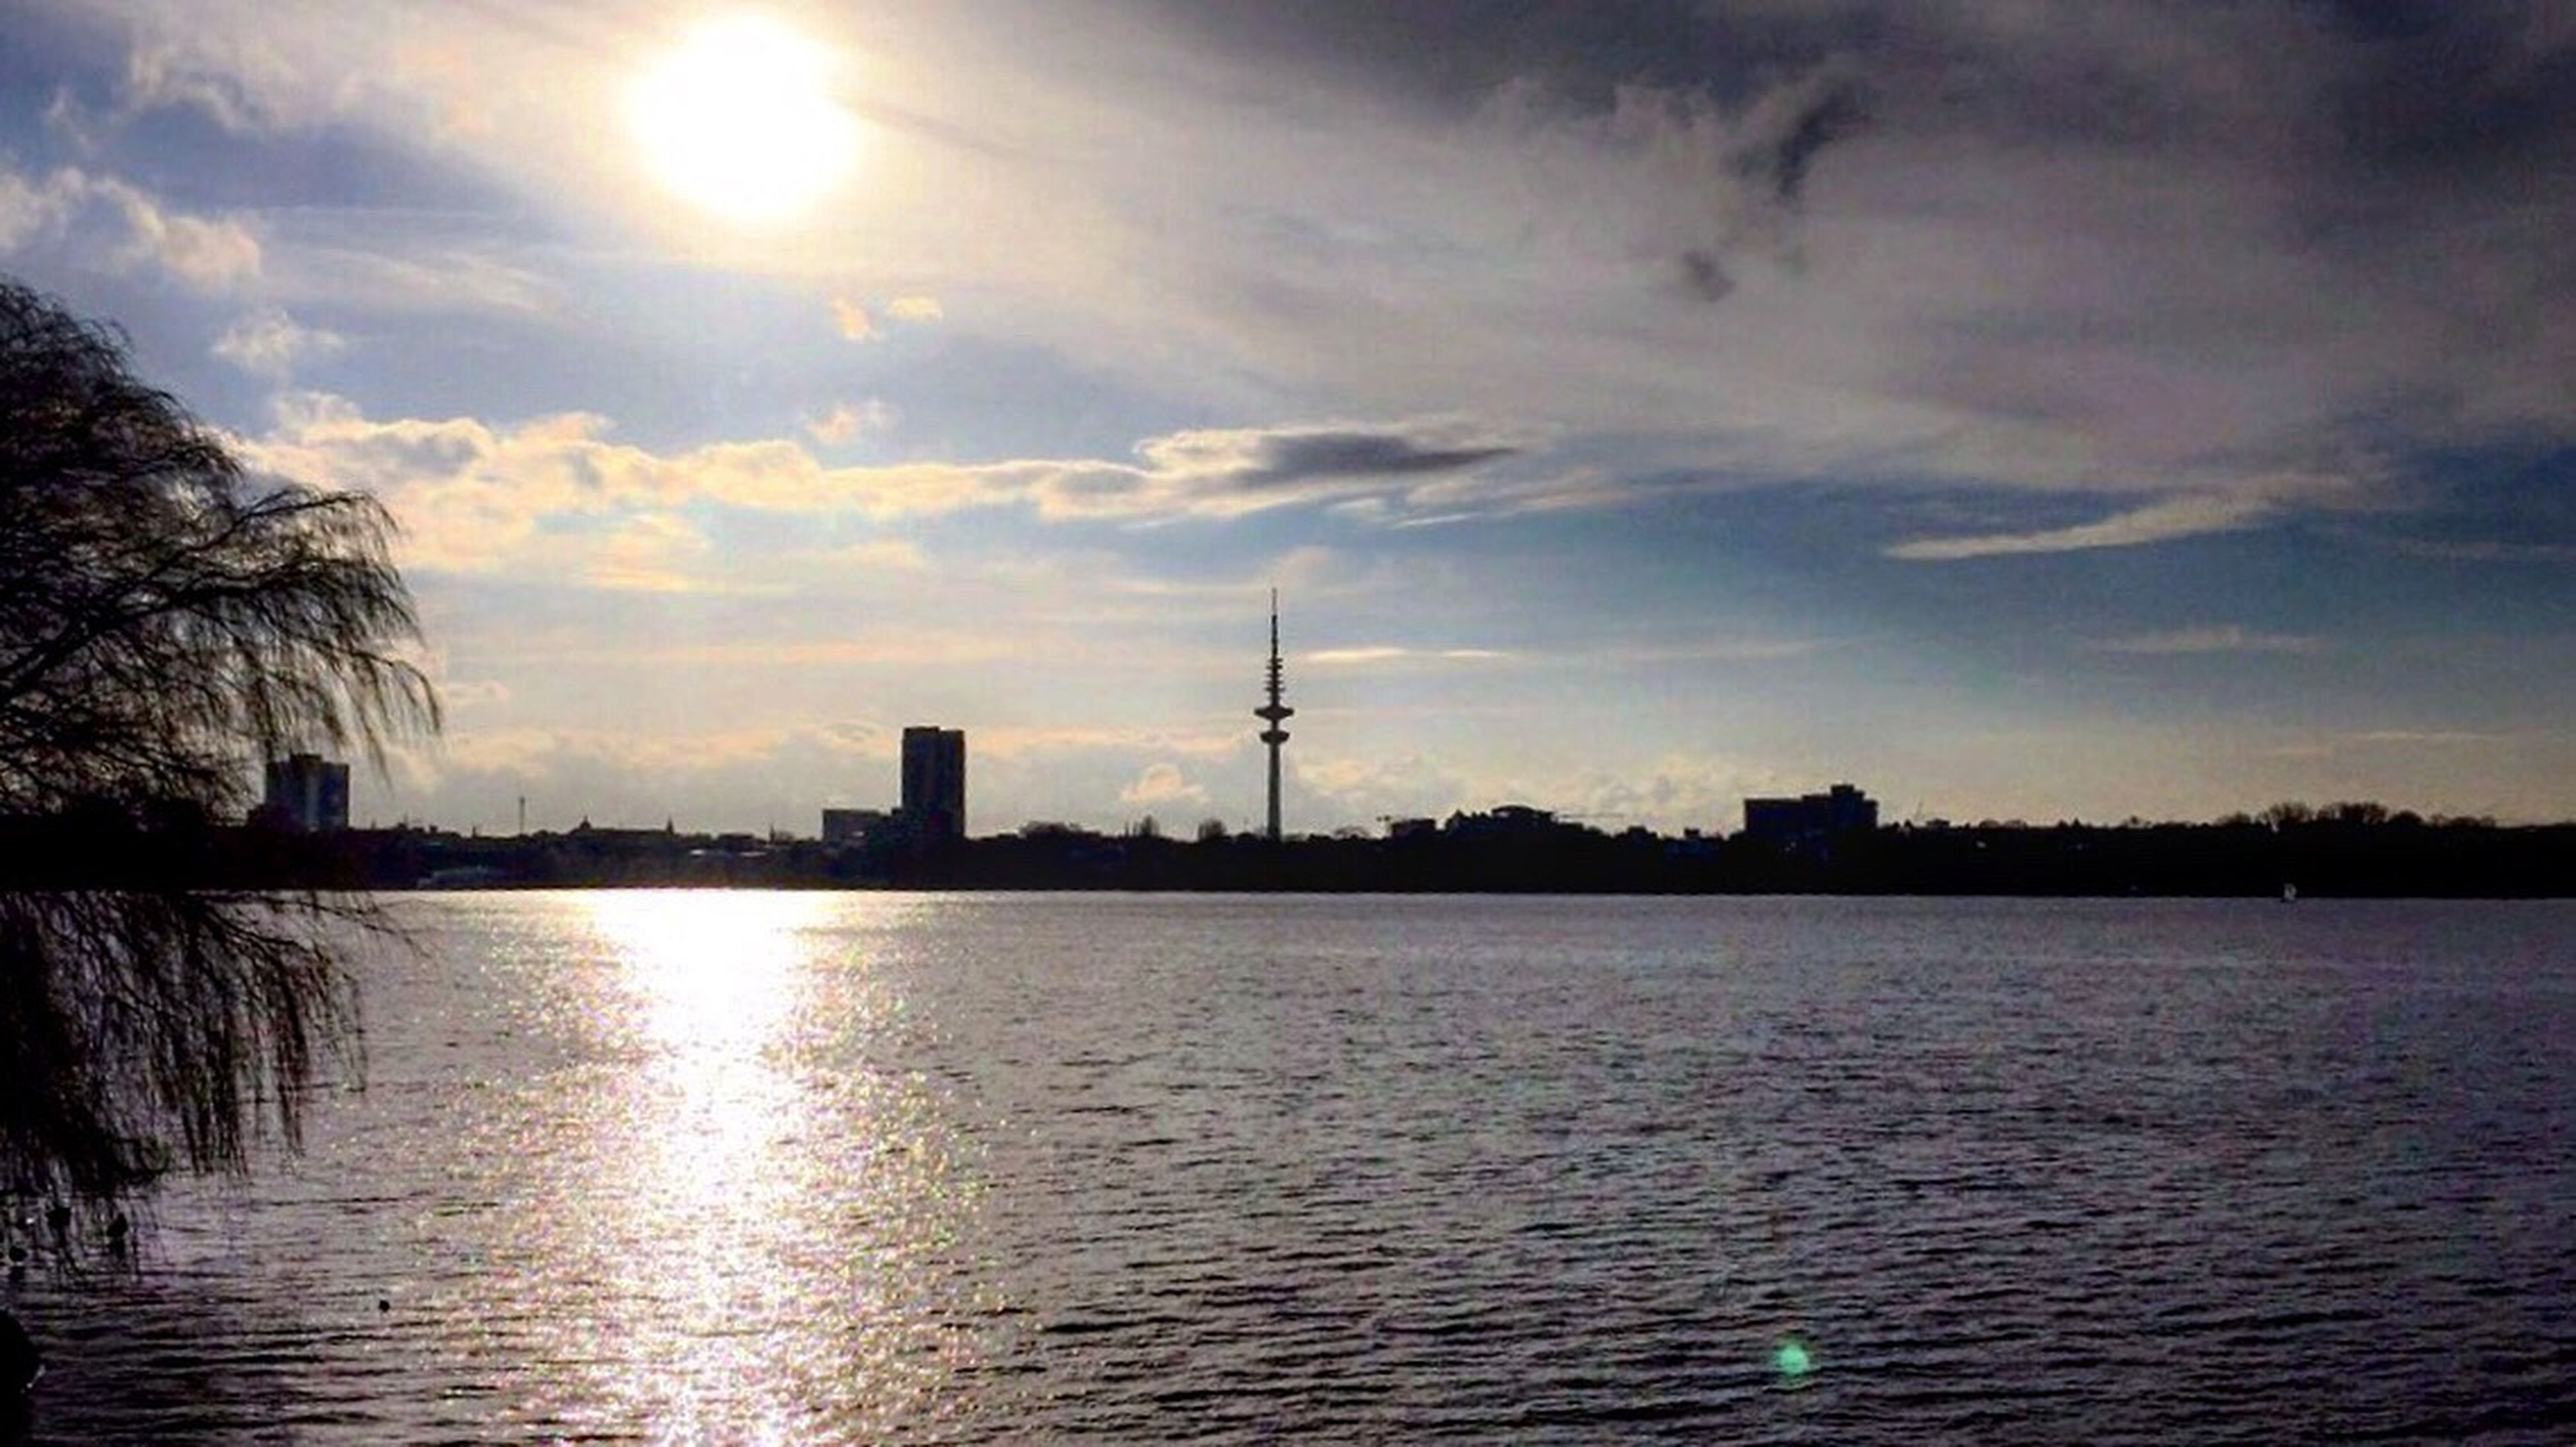 Hope Alster Hamburg Home Love Sun Whater Reflection NeverForget Nevergiveup True Ineedyou  Soul Sorry Together Life Alone Again Bye Bye Forgive End Of The Day